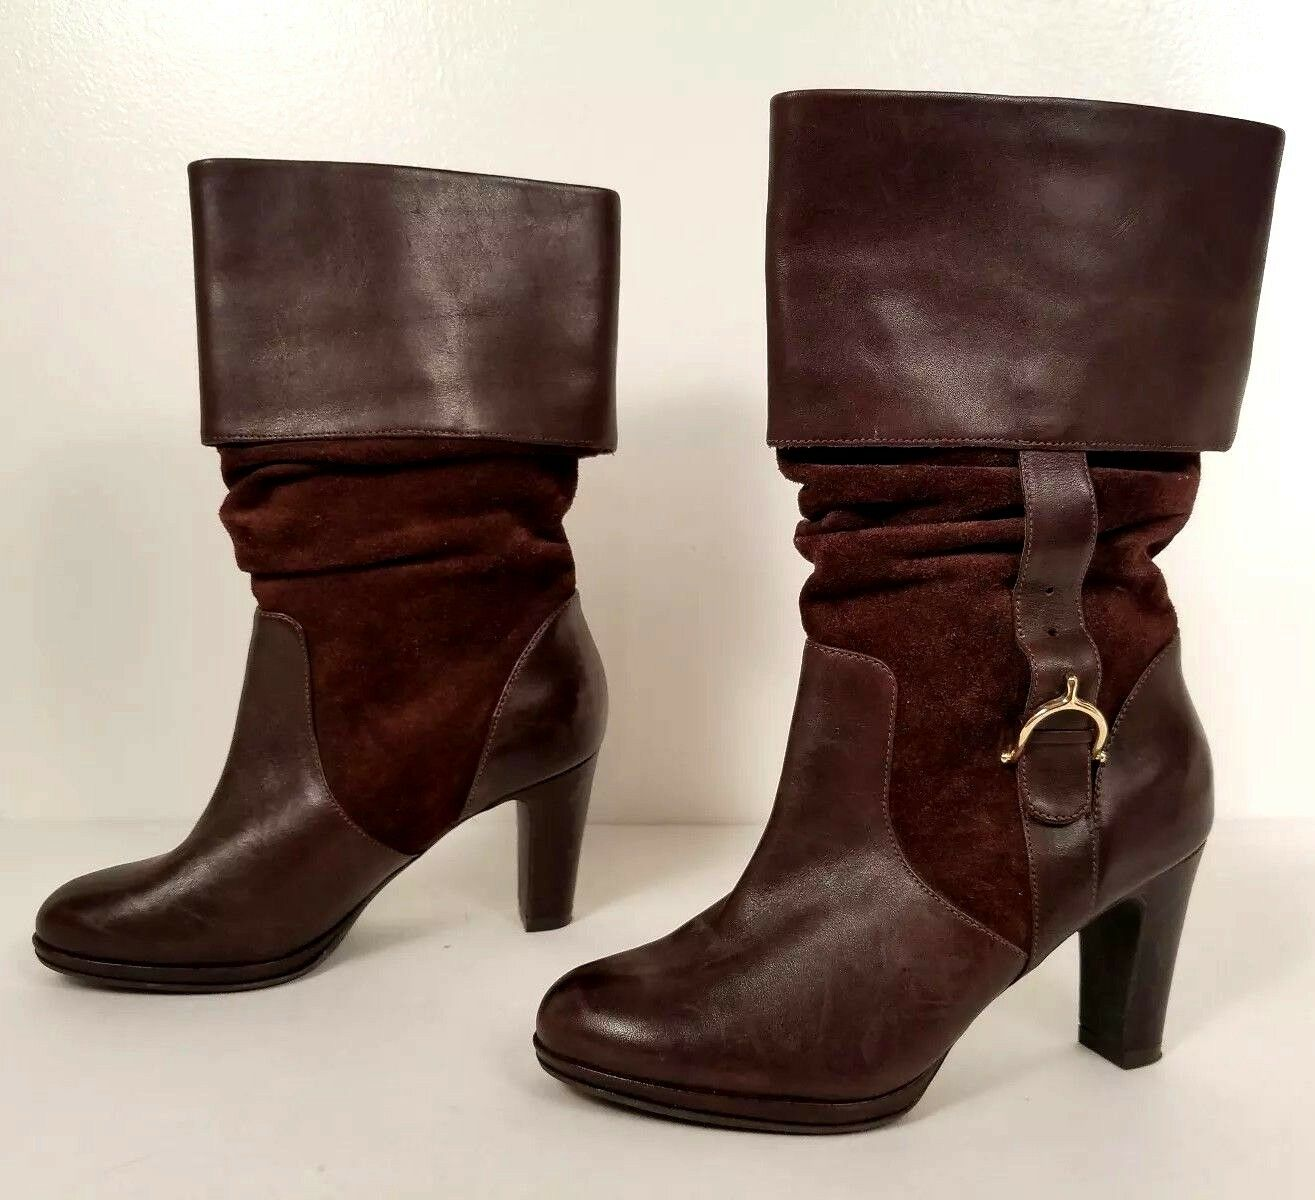 RALPH LAUREN Brown Leather & Suede Mid-Calf Cuff Boots Heels 5.5 M (SS17)